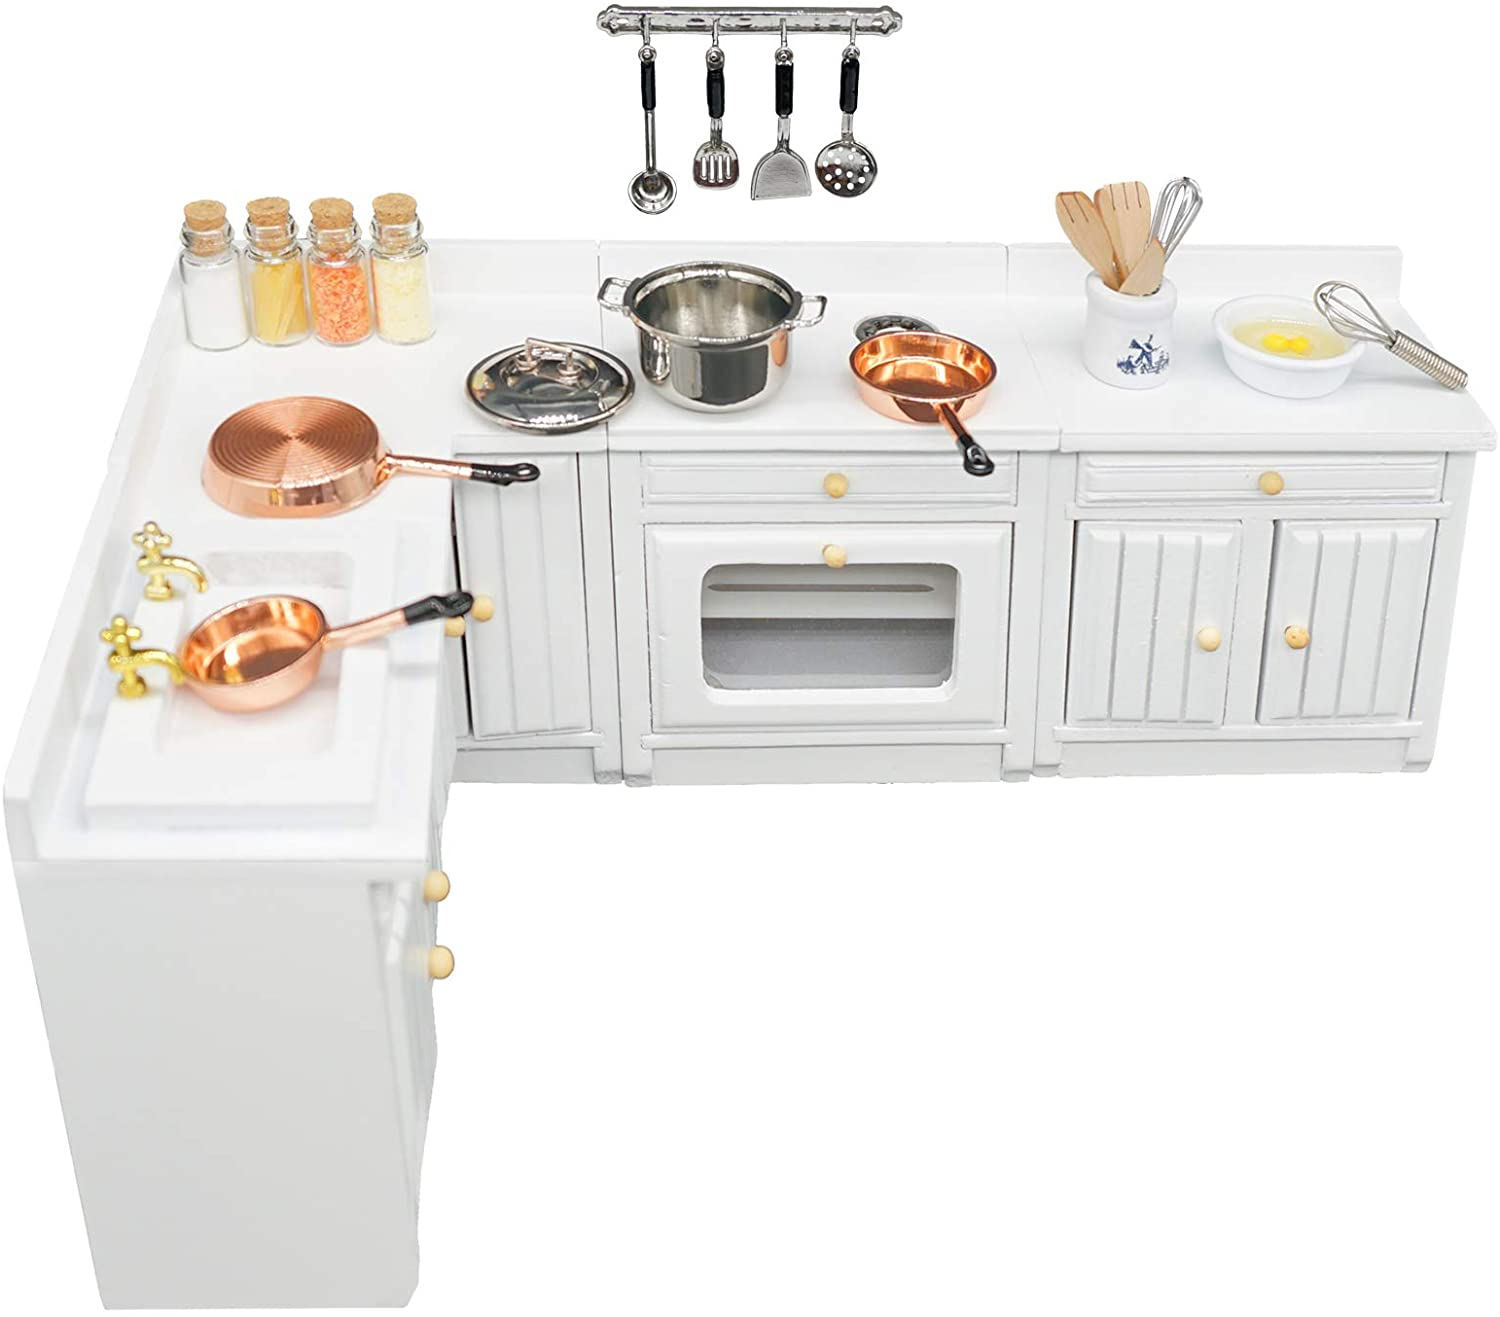 SAMCAMI Miniature Dollhouse Furniture Kitchen Set (24 Pieces) - Freely Combined Wooden Kitchen Cabinets and Other Dollhouse Accessories - 1 12 Scale Dollhouse Furniture (White)